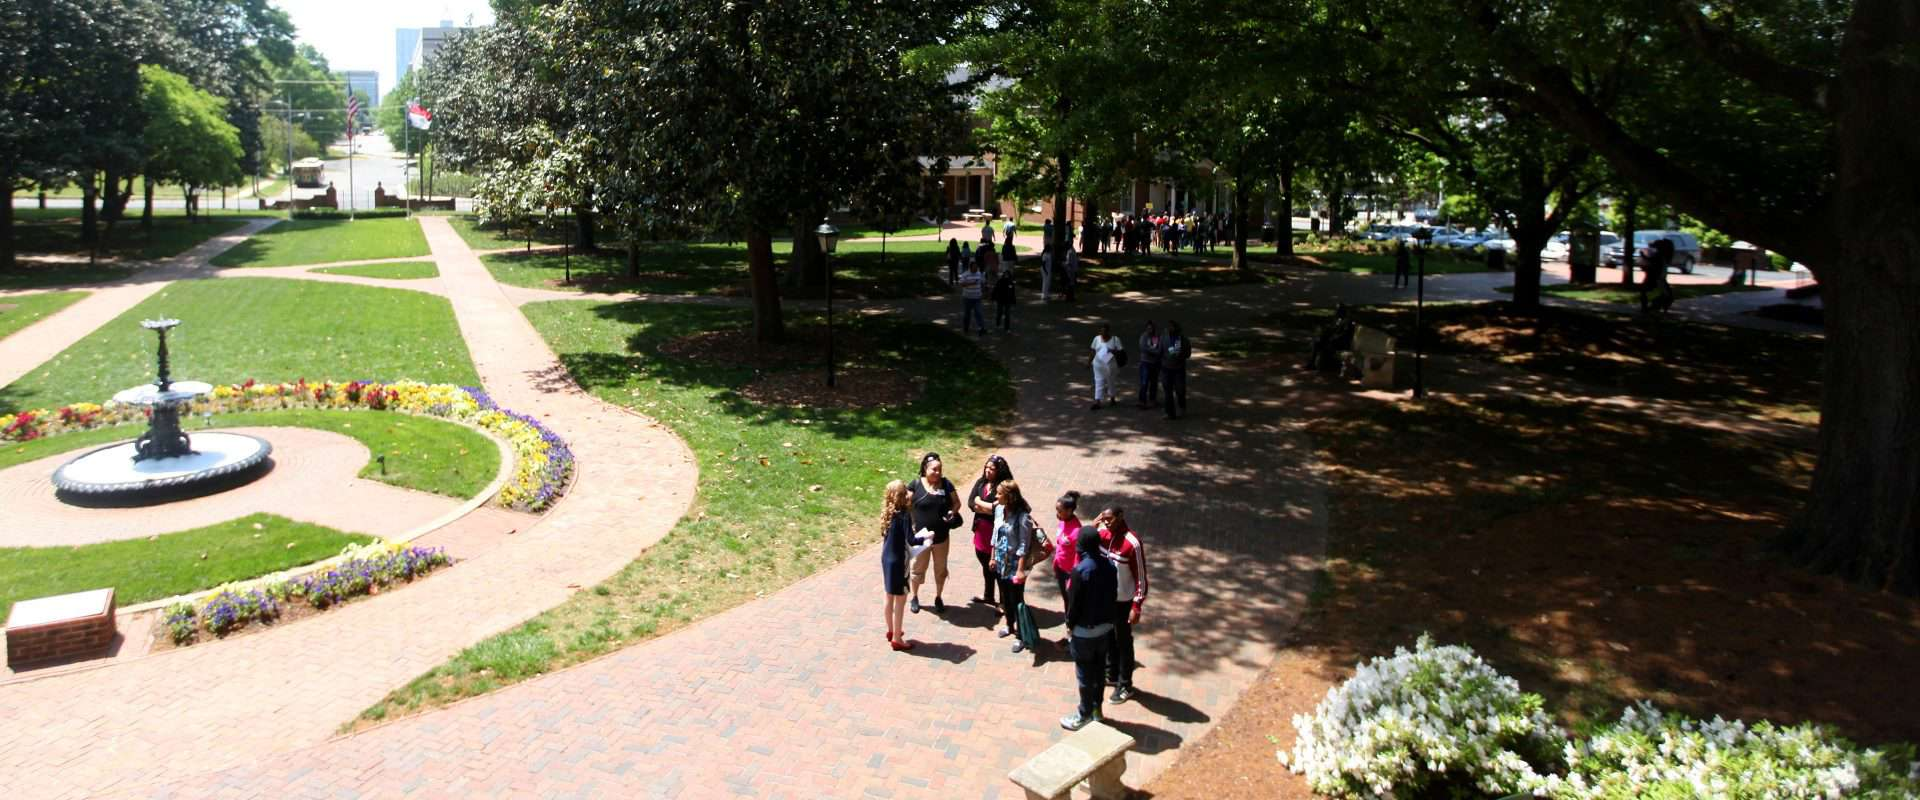 A photo of Students in front of Main Building from one of the building's balconies.